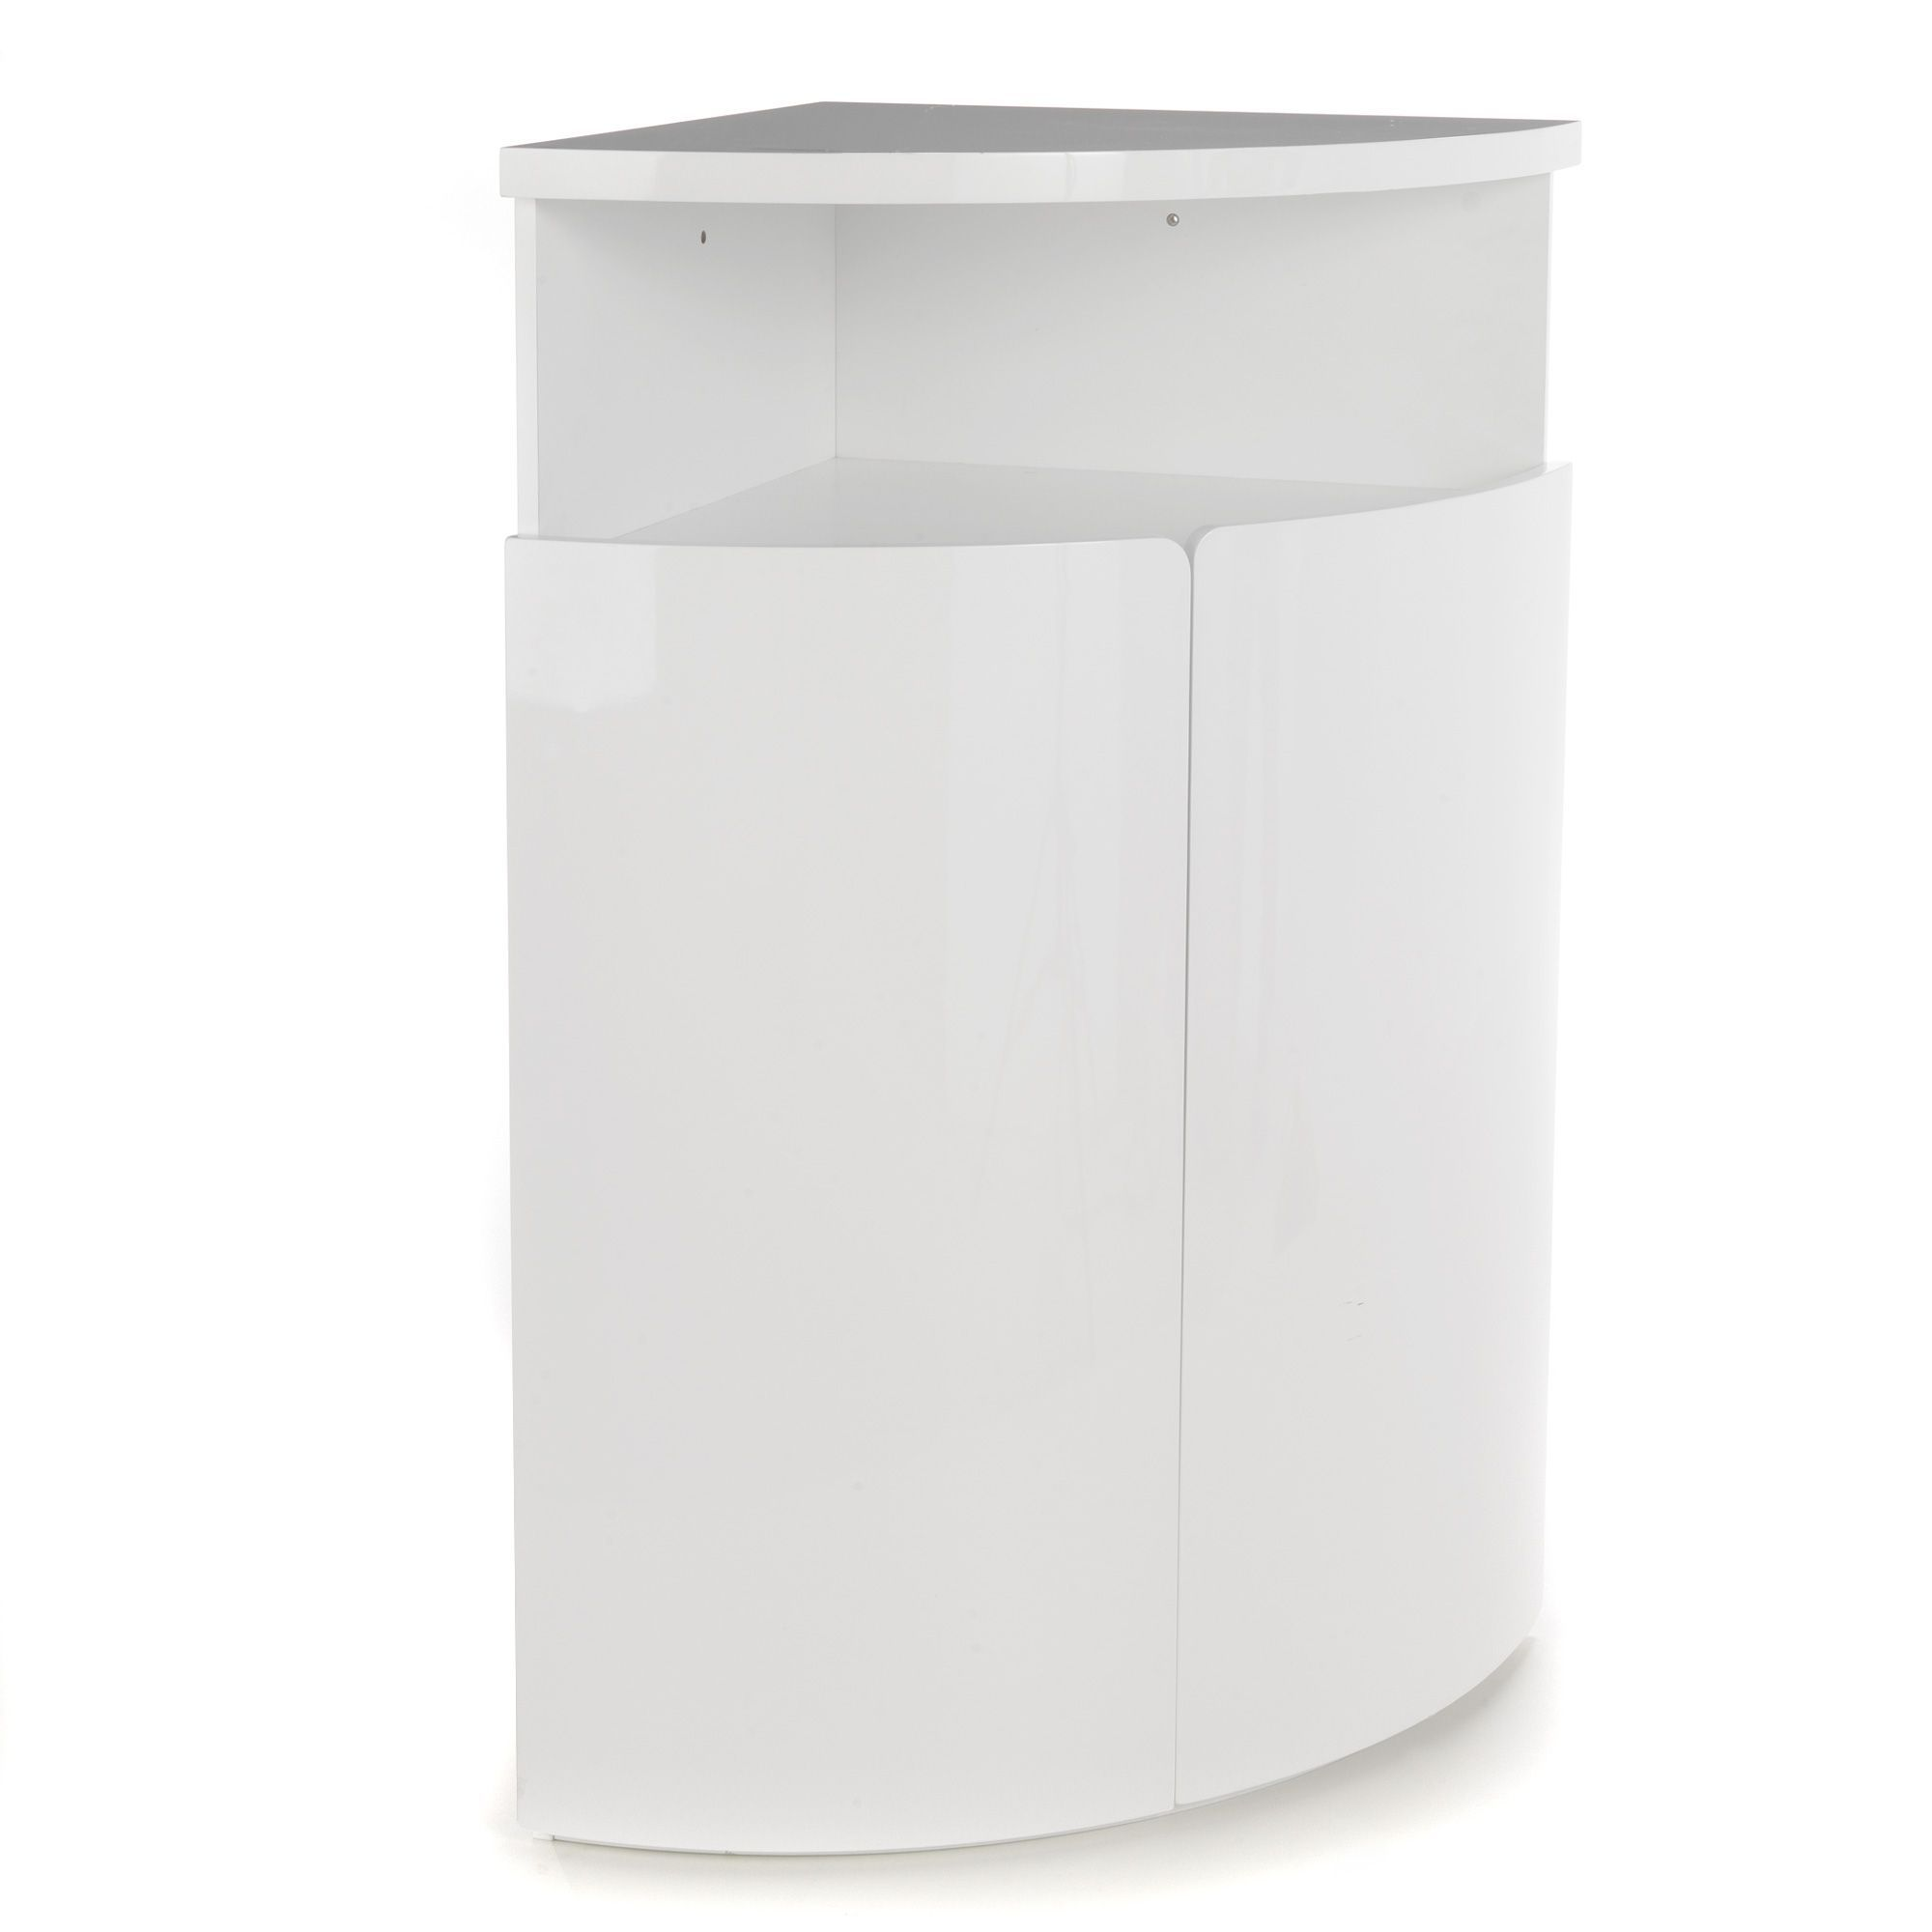 Buffet d 39 angle haut blanc laqu new corner for Meuble d angle pour salon